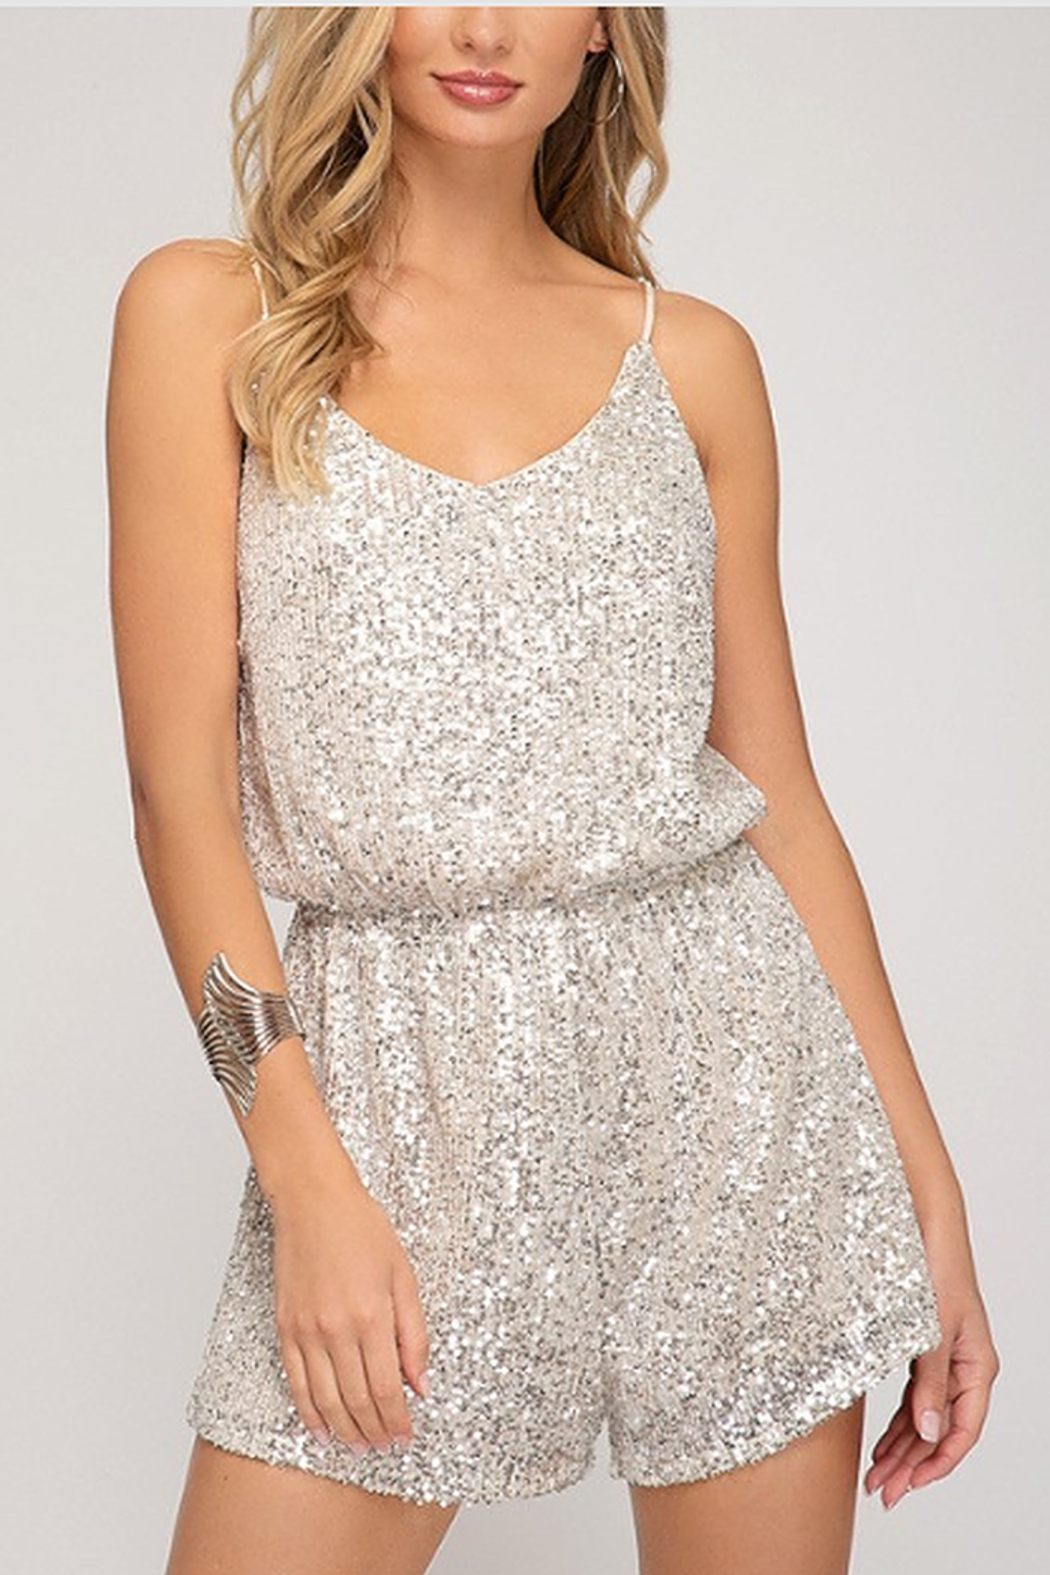 She + Sky Sequin Cami Romper - Main Image